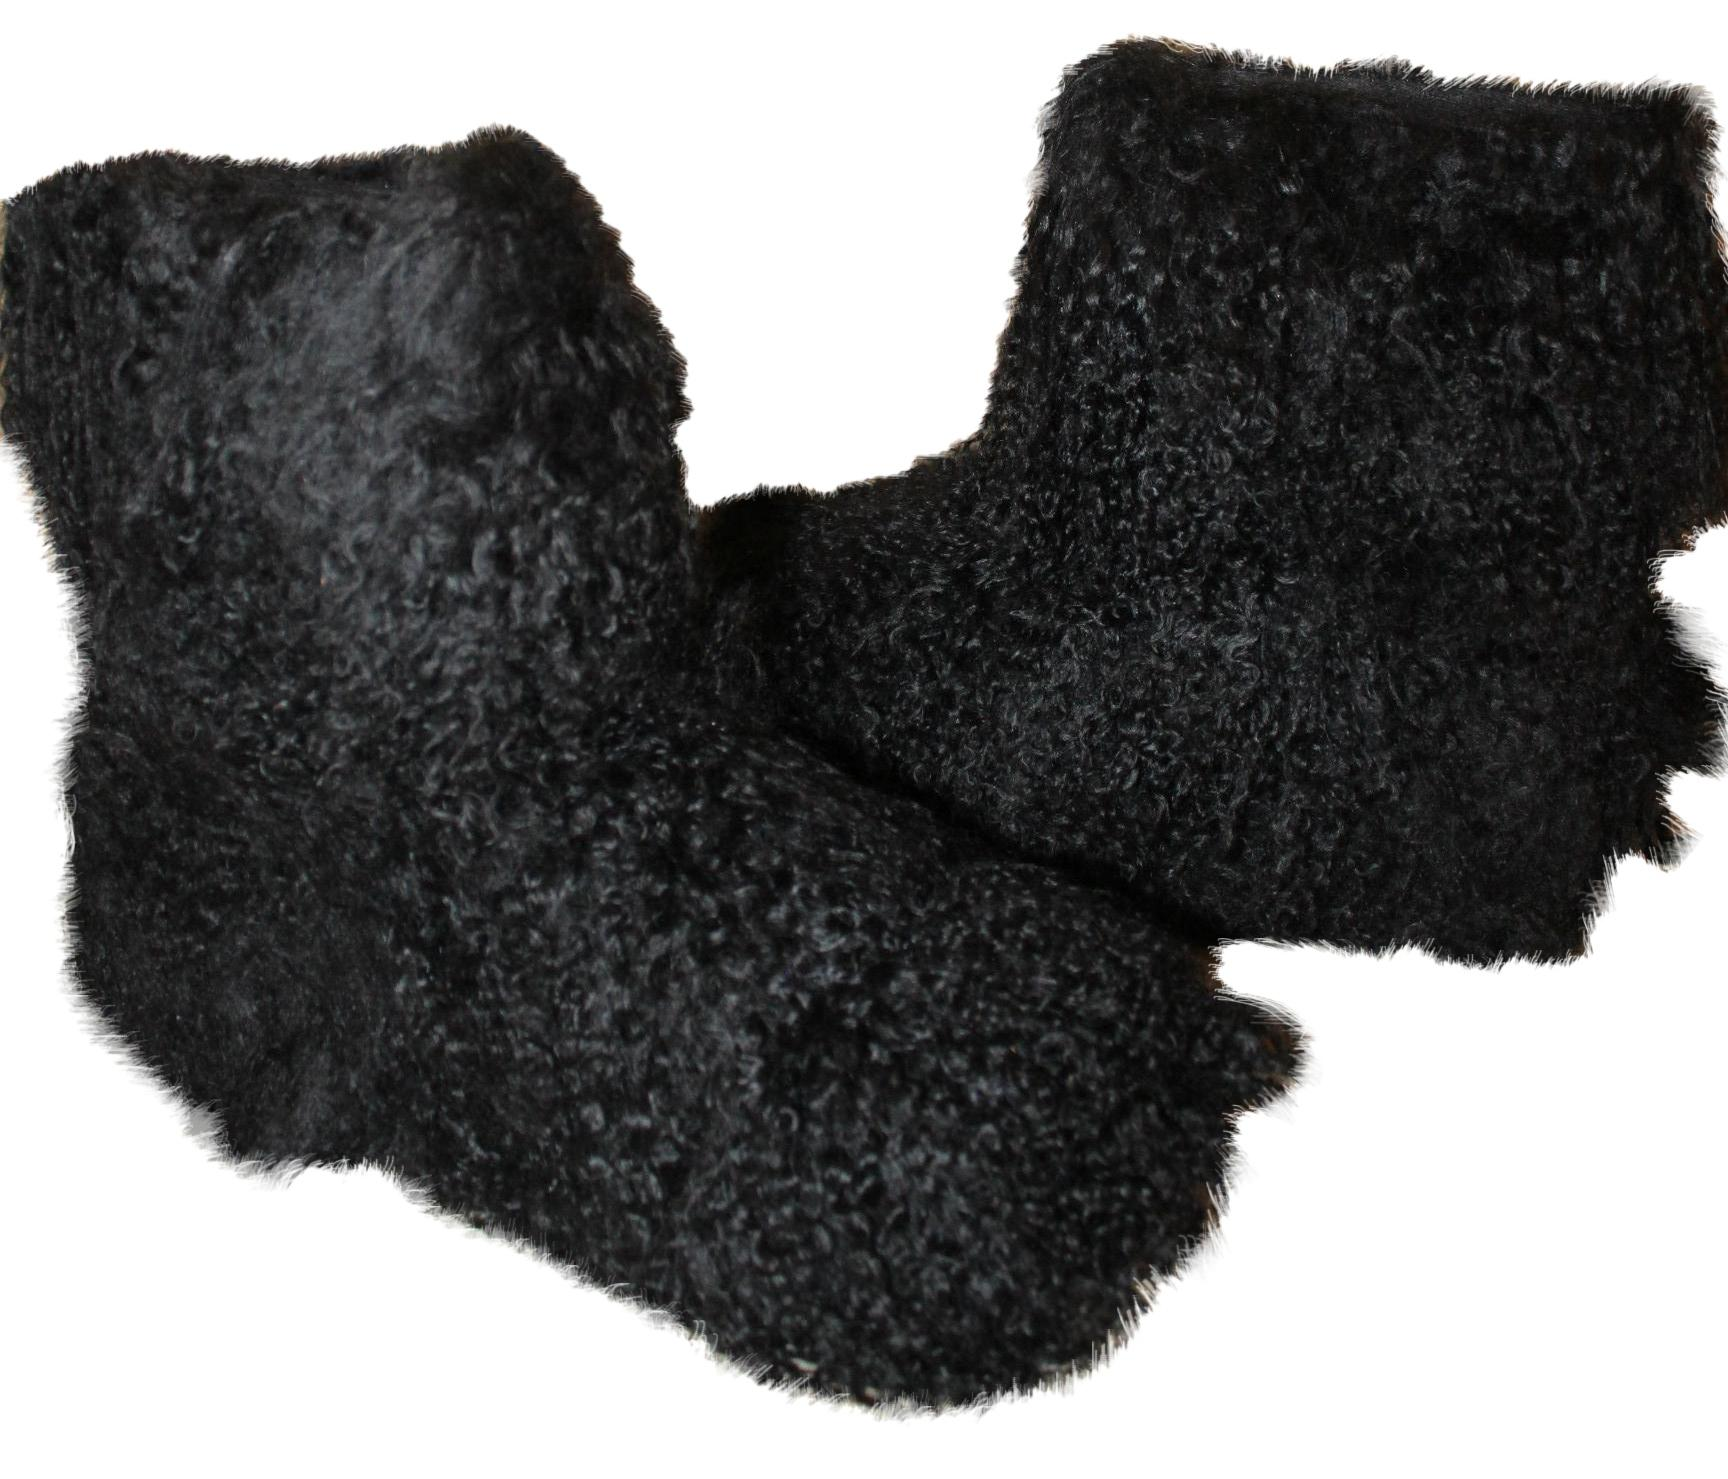 ac27d197d01 promo code for ugg fluff momma boots for sale 8634f 6de37